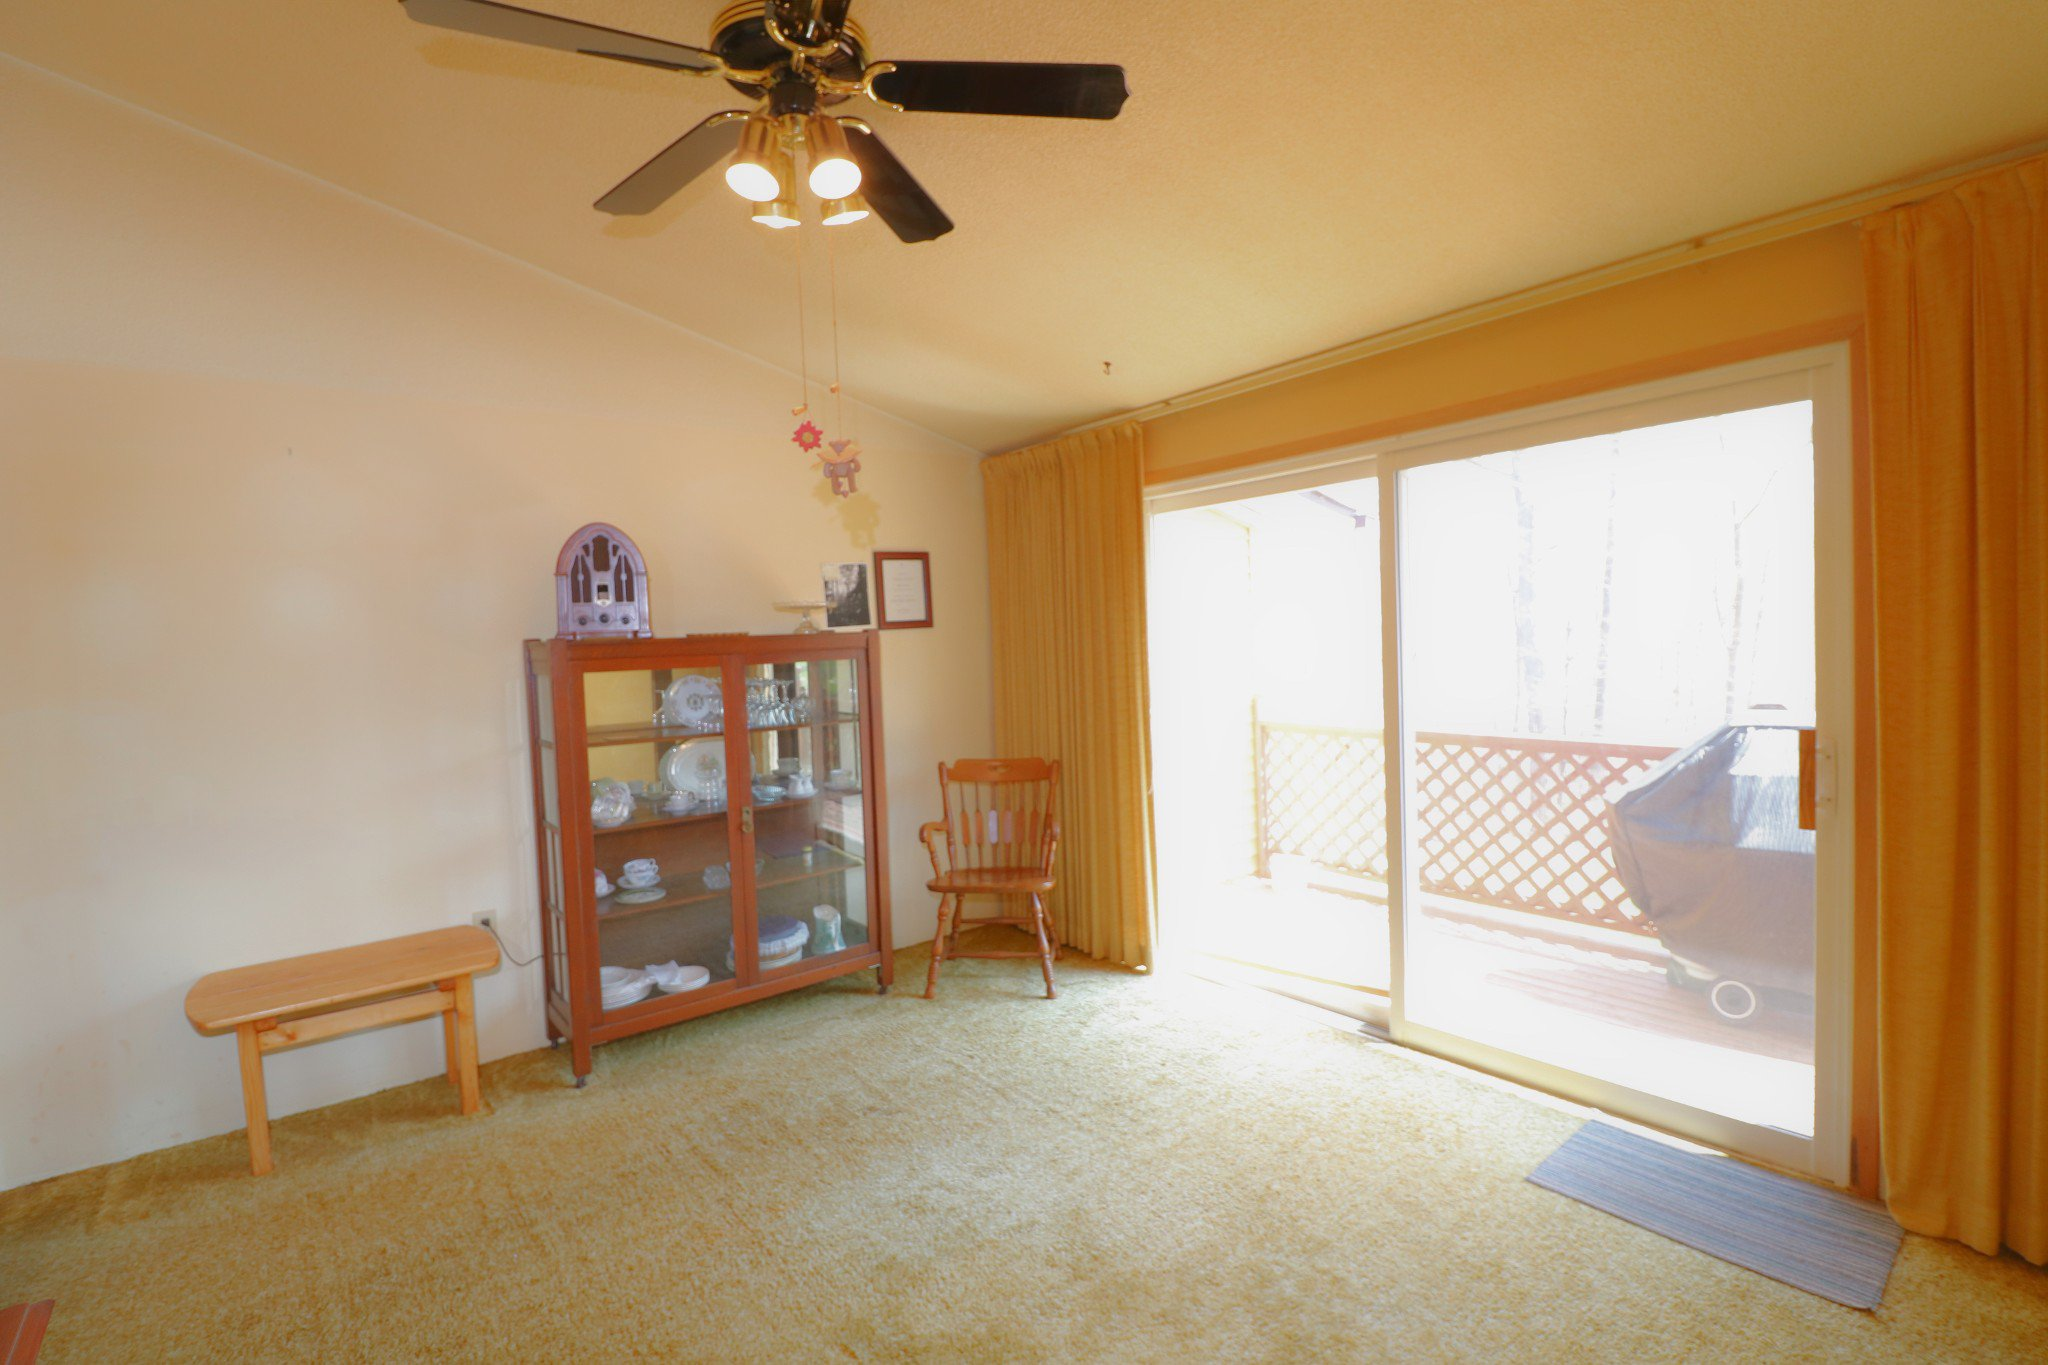 Photo 6: Photos: 37 Halstead Drive in Roseneath: Residential Detached for sale : MLS®# 192863